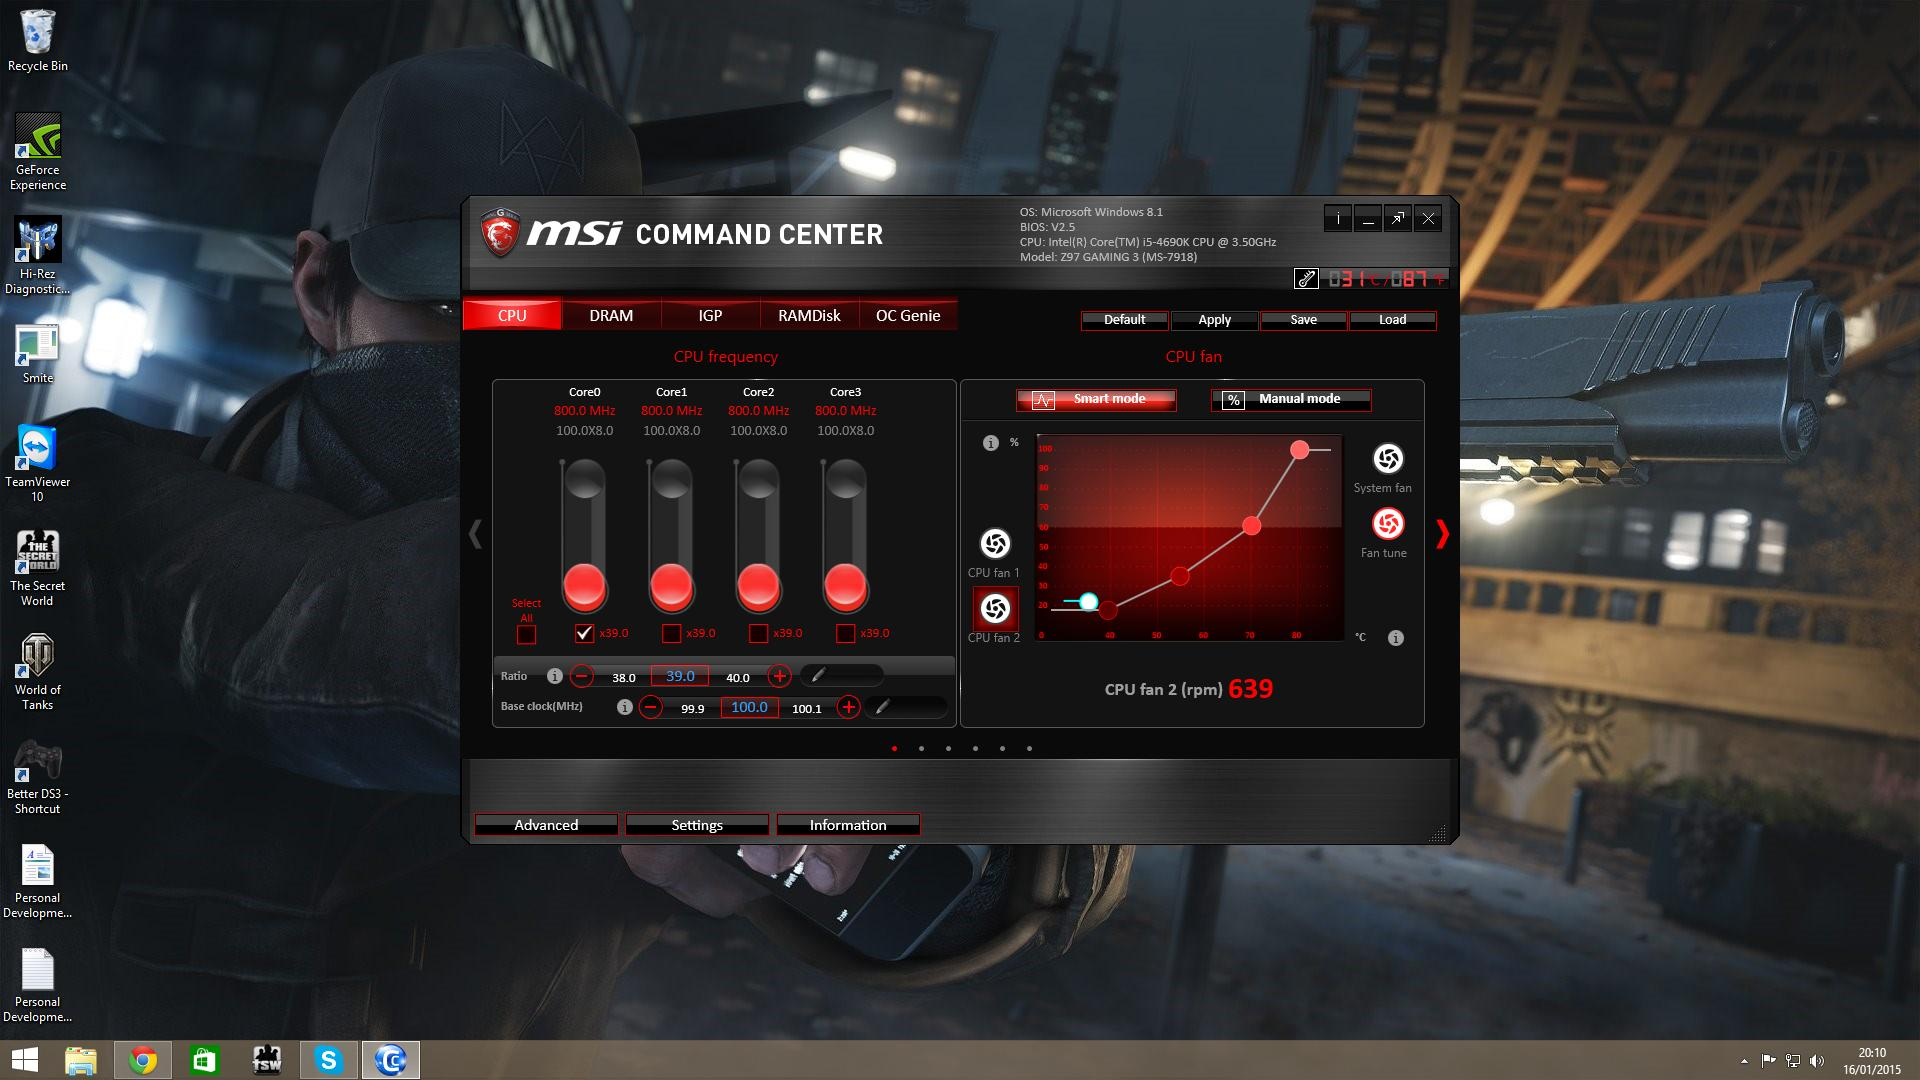 my msi z97 gaming 7 motherboard does not let me control my